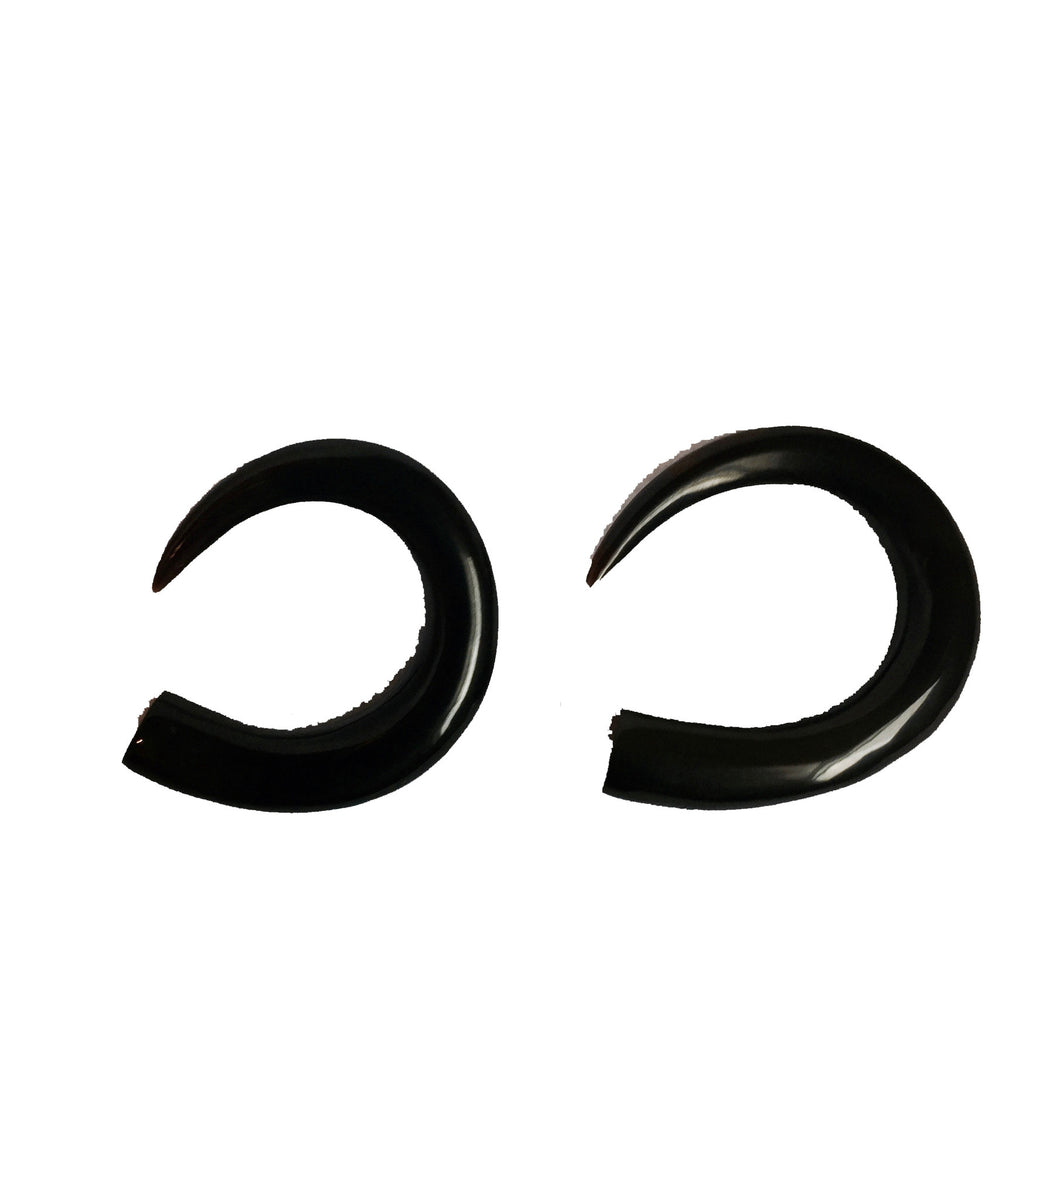 Water Buffalo Talon Ear Plugs 7/16